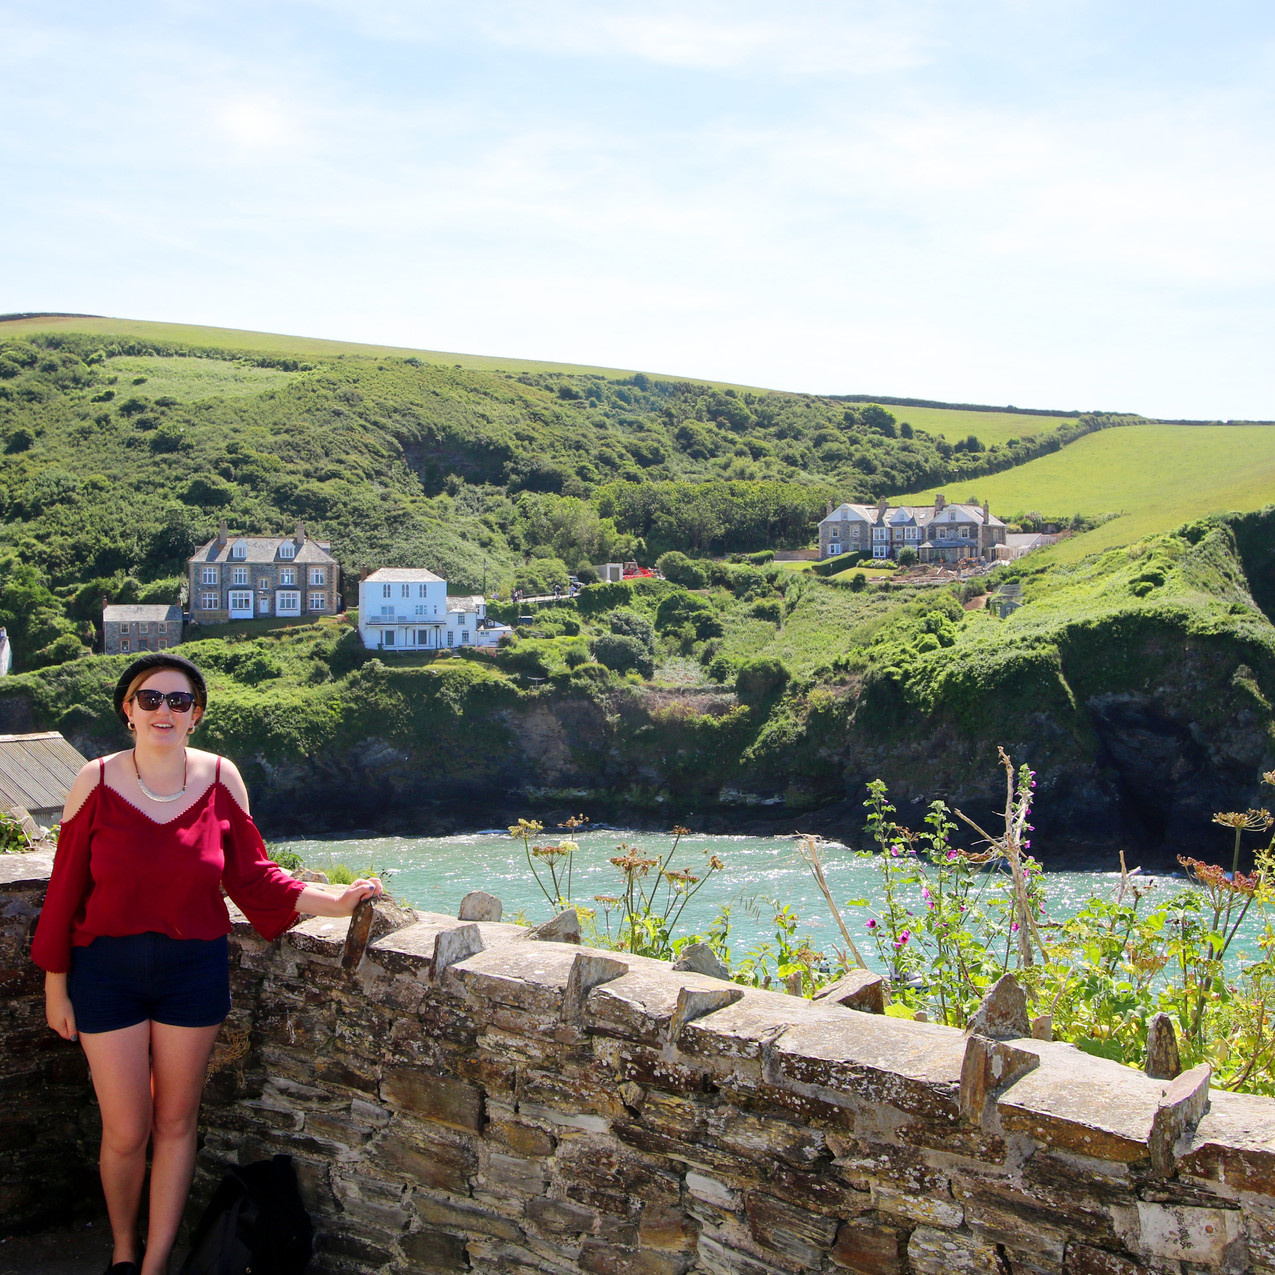 Port Isaac in Cornwall, filming location for the ITV show Doc Martin.